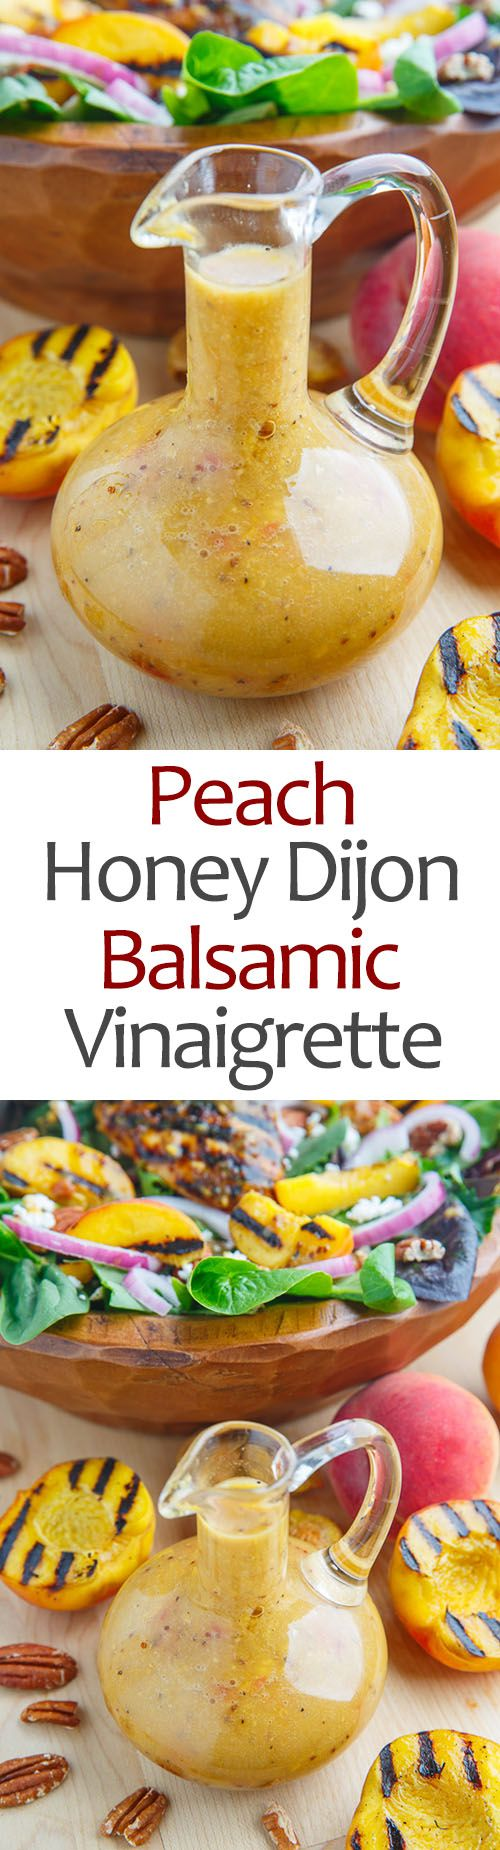 Peach Honey Dijon Balsamic Vinaigrette